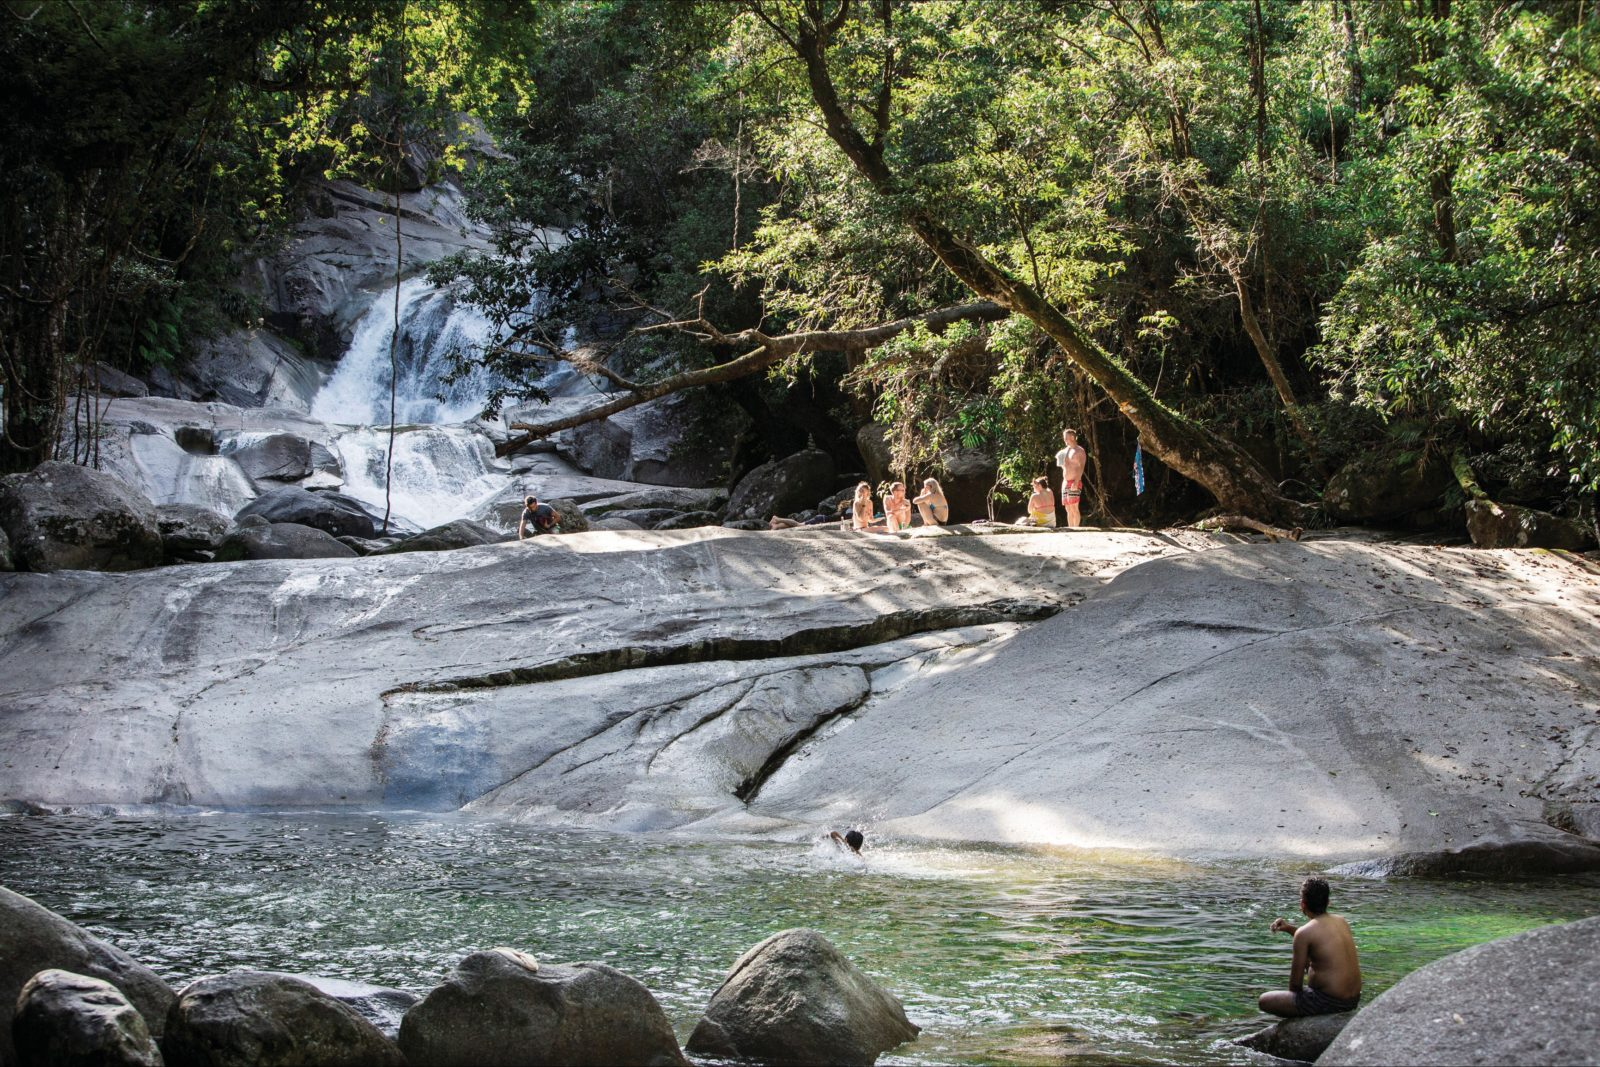 People on rock above bottom pool with waterfall in background.